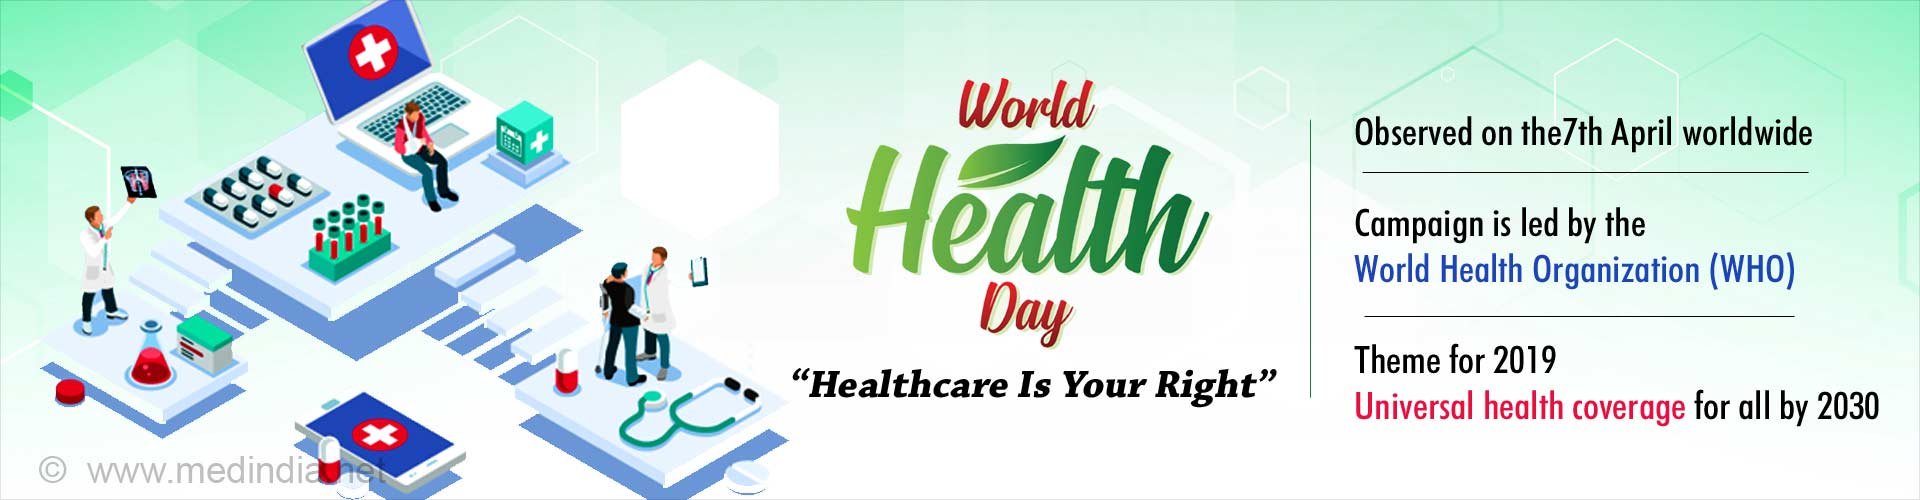 World Health Day - Universal Health Coverage for All by 2030